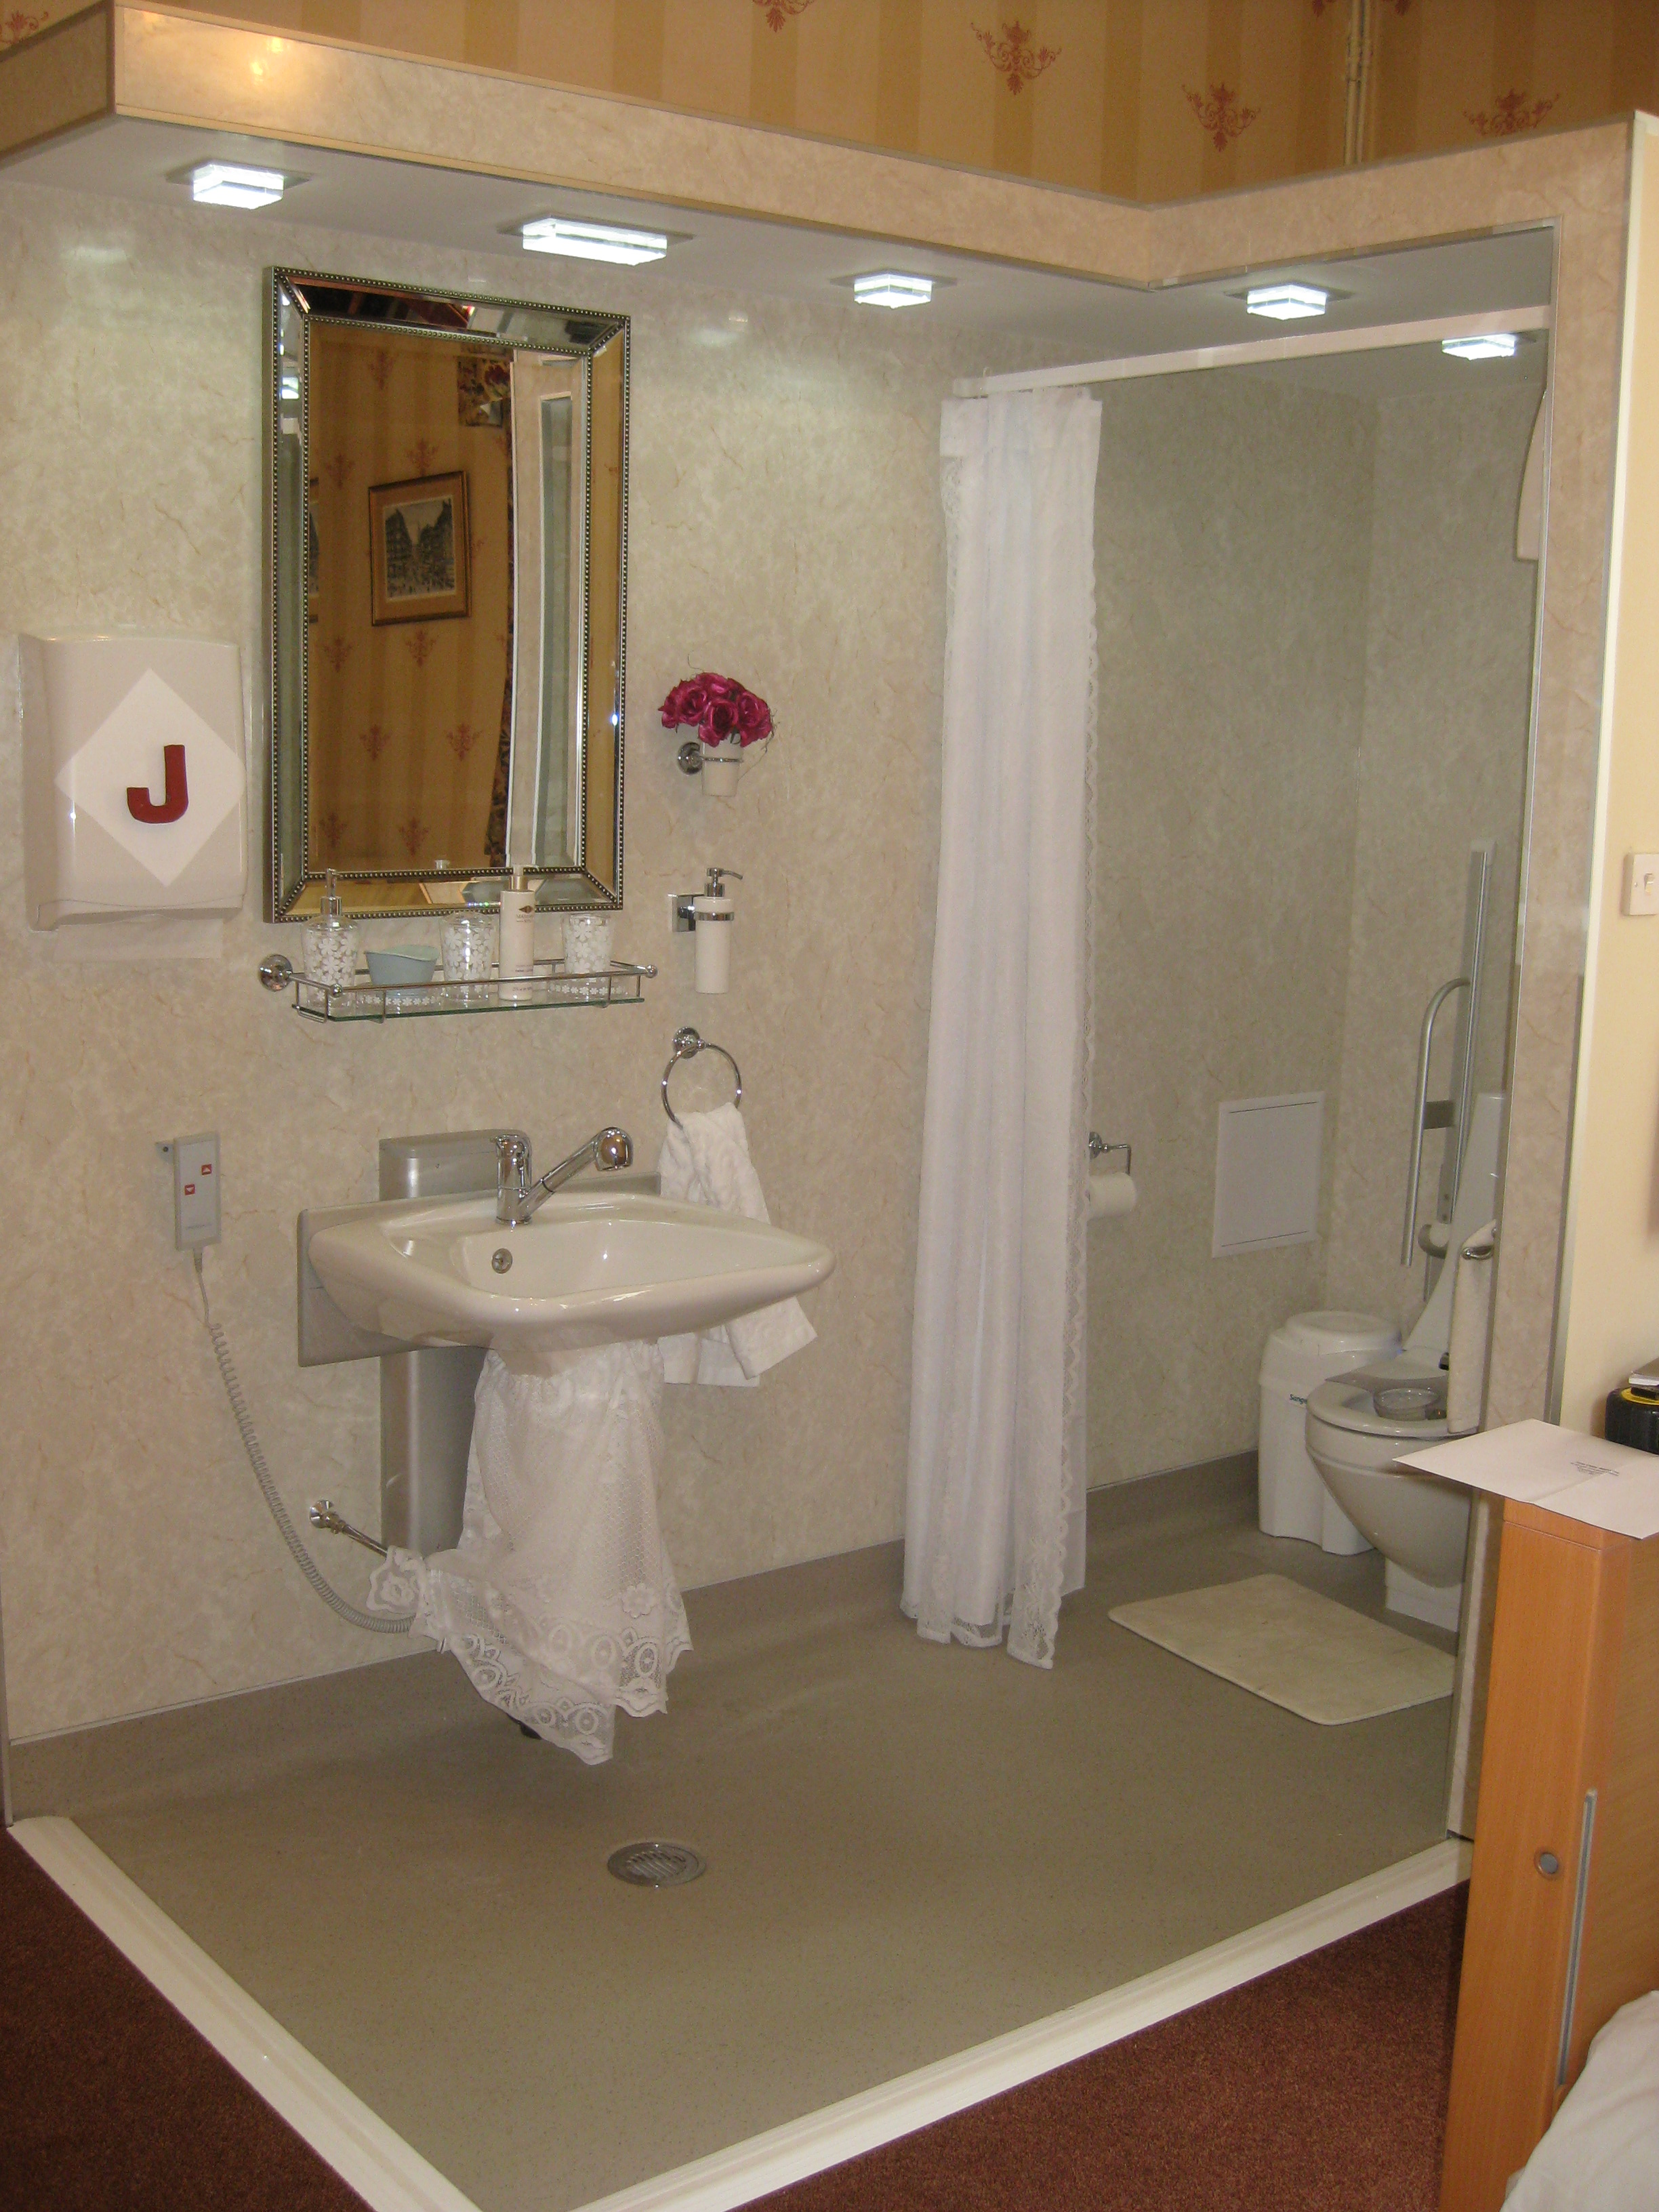 The Best Disabled Bathroom Design The Best Disabled Bathroom Design